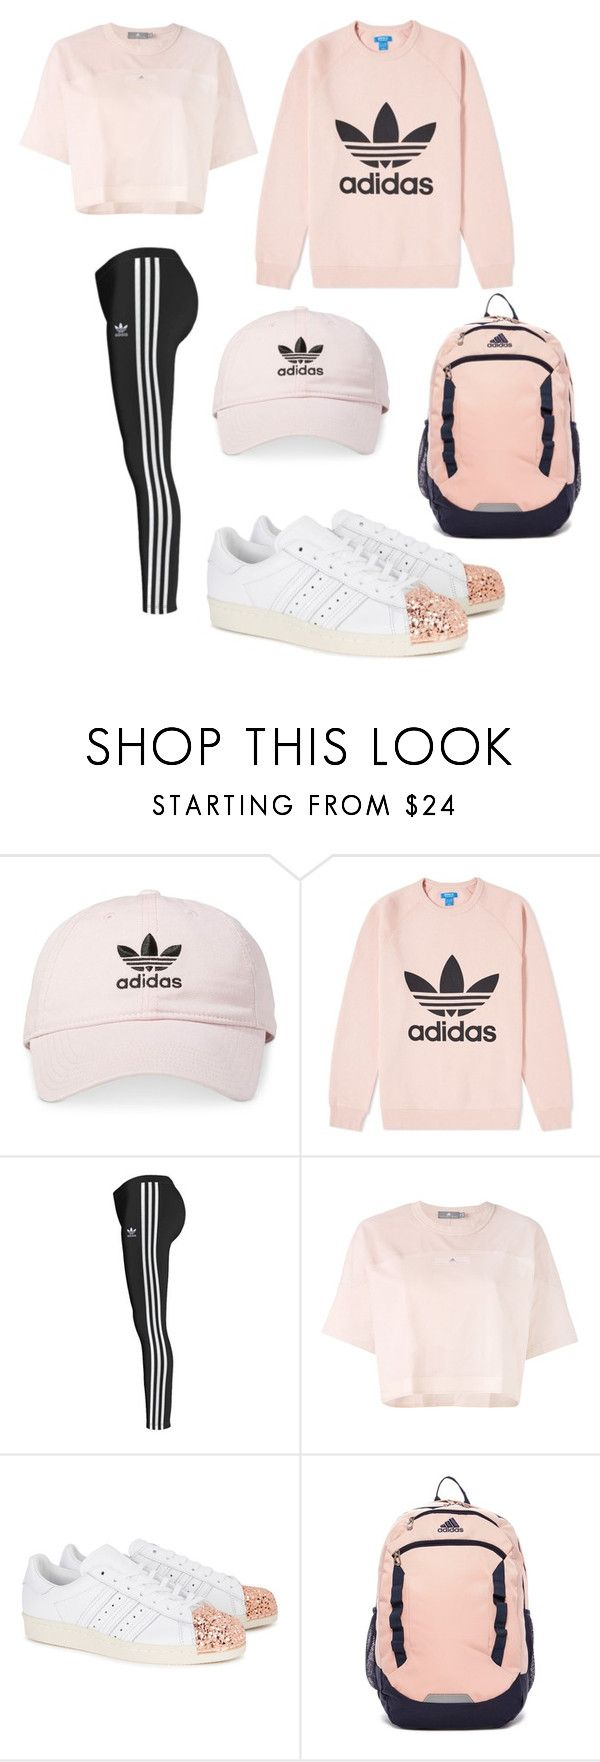 """""""Adidas"""" by kaylakmichell-kat ❤ liked on Polyvore featuring adidas and adidas Originals"""